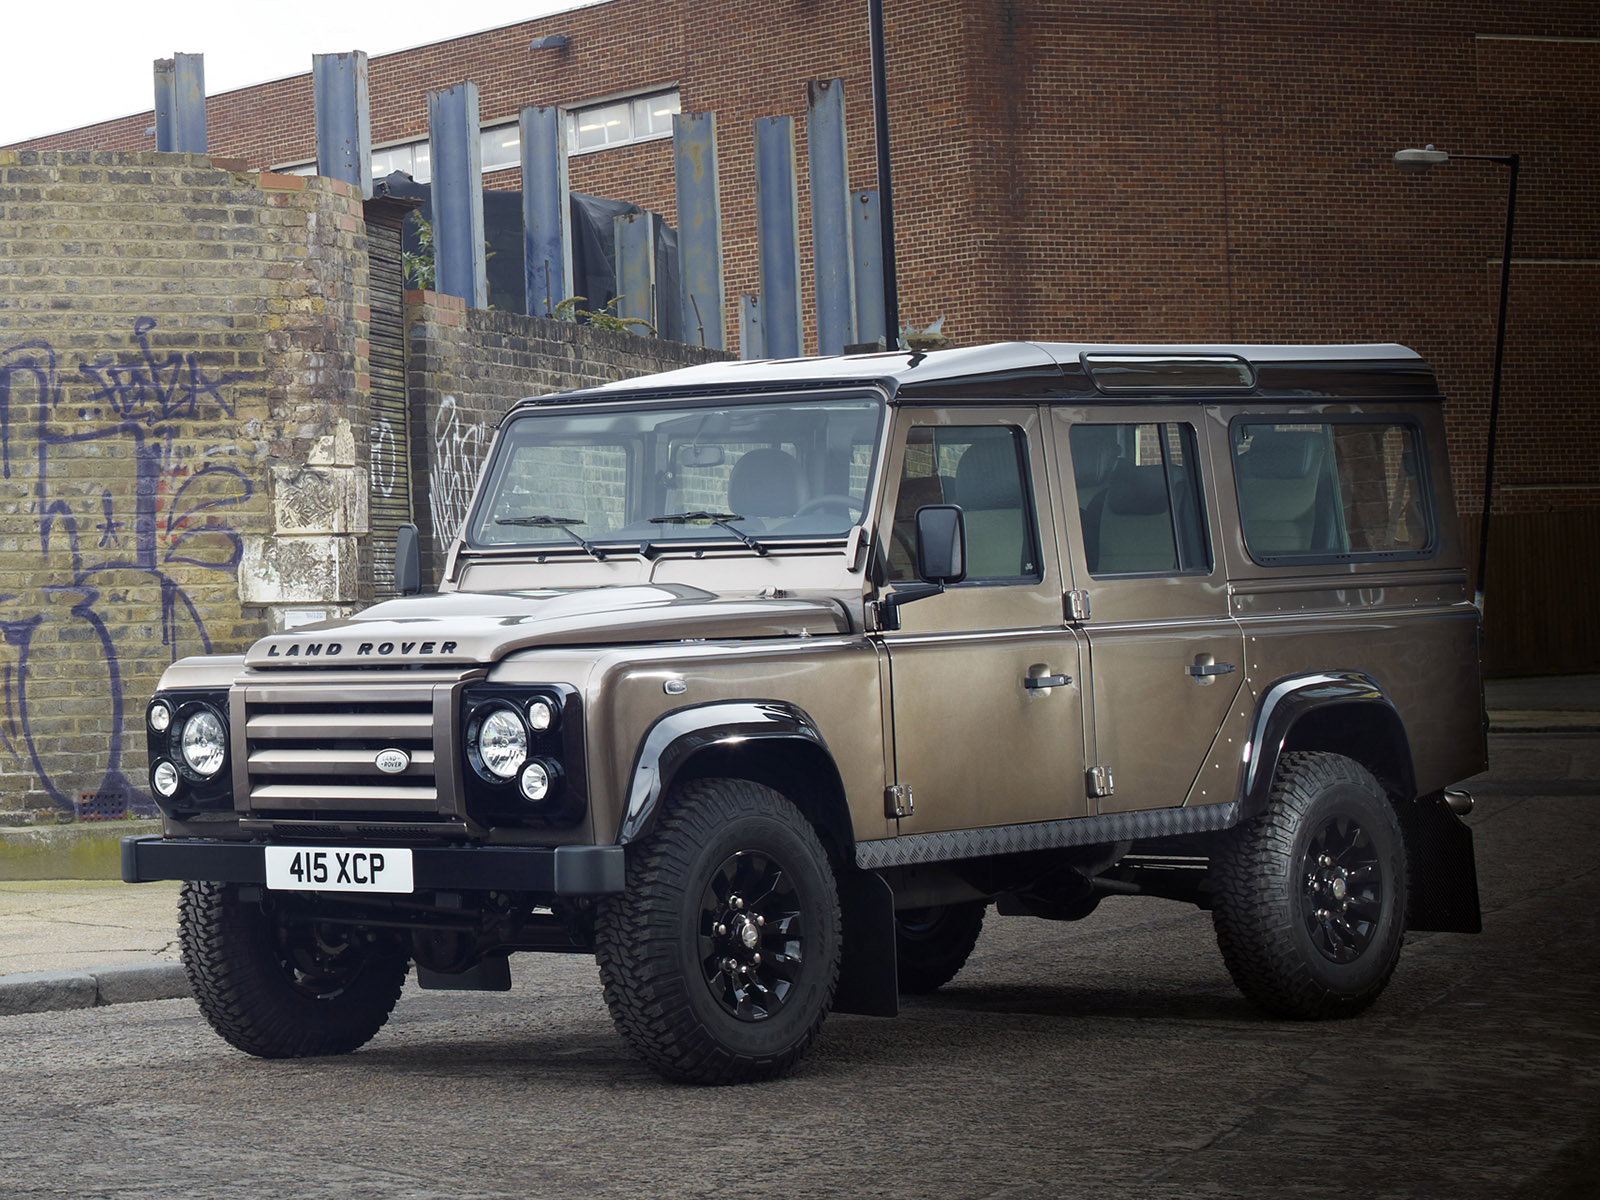 http://carinpicture.com/wp-content/uploads/2012/01/Land-Rover-Defender-110-Station-Wagon-X-Tech-Edition-2011-Photo-04.jpg